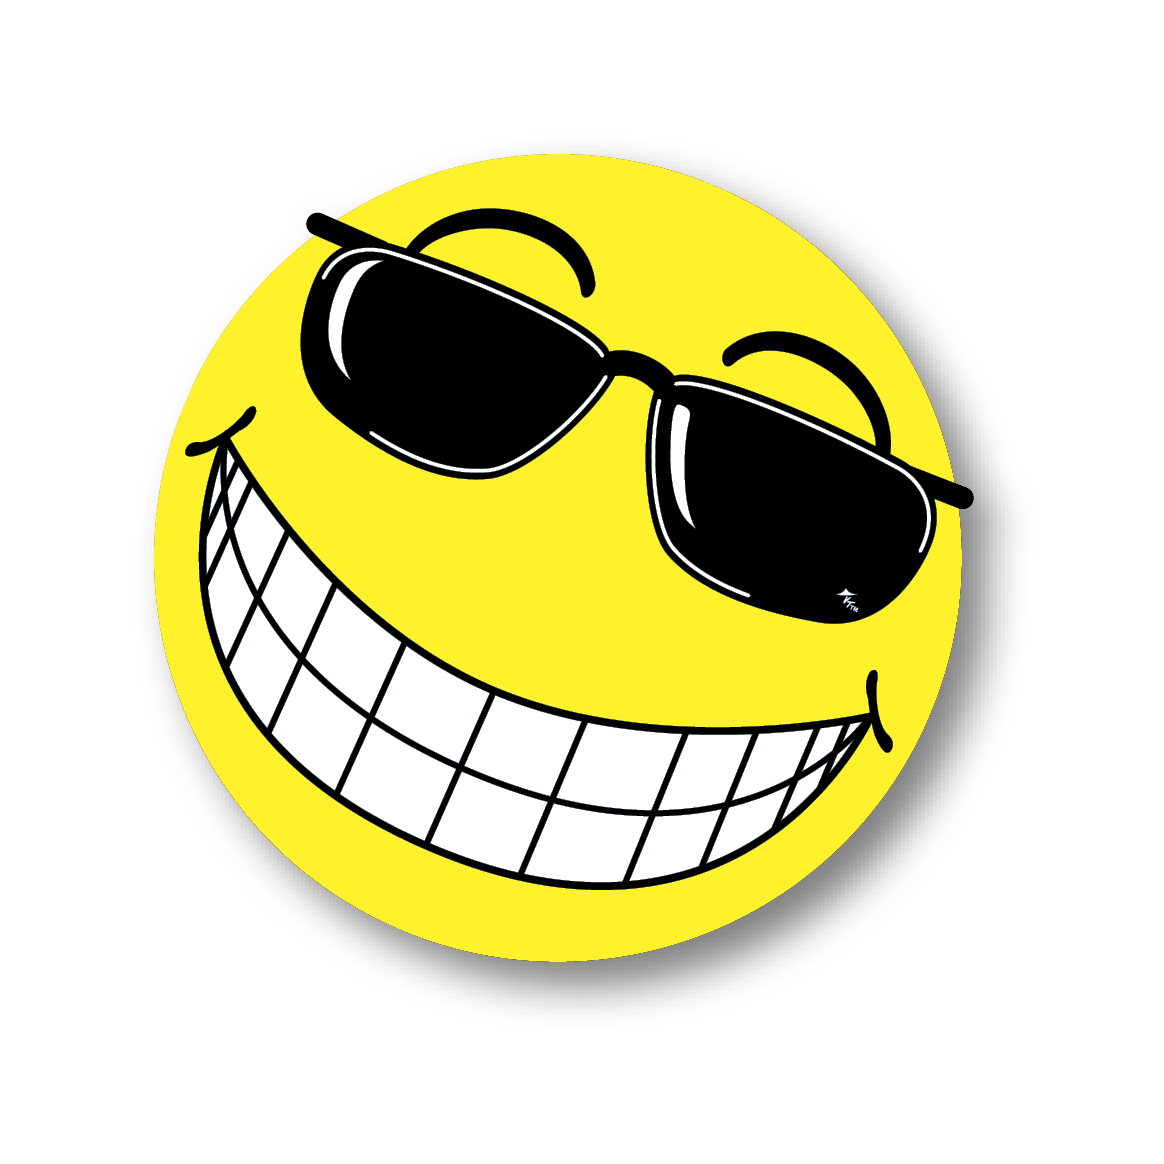 Smiley Face With Sunglasses  happy face with sunglasses clipart best